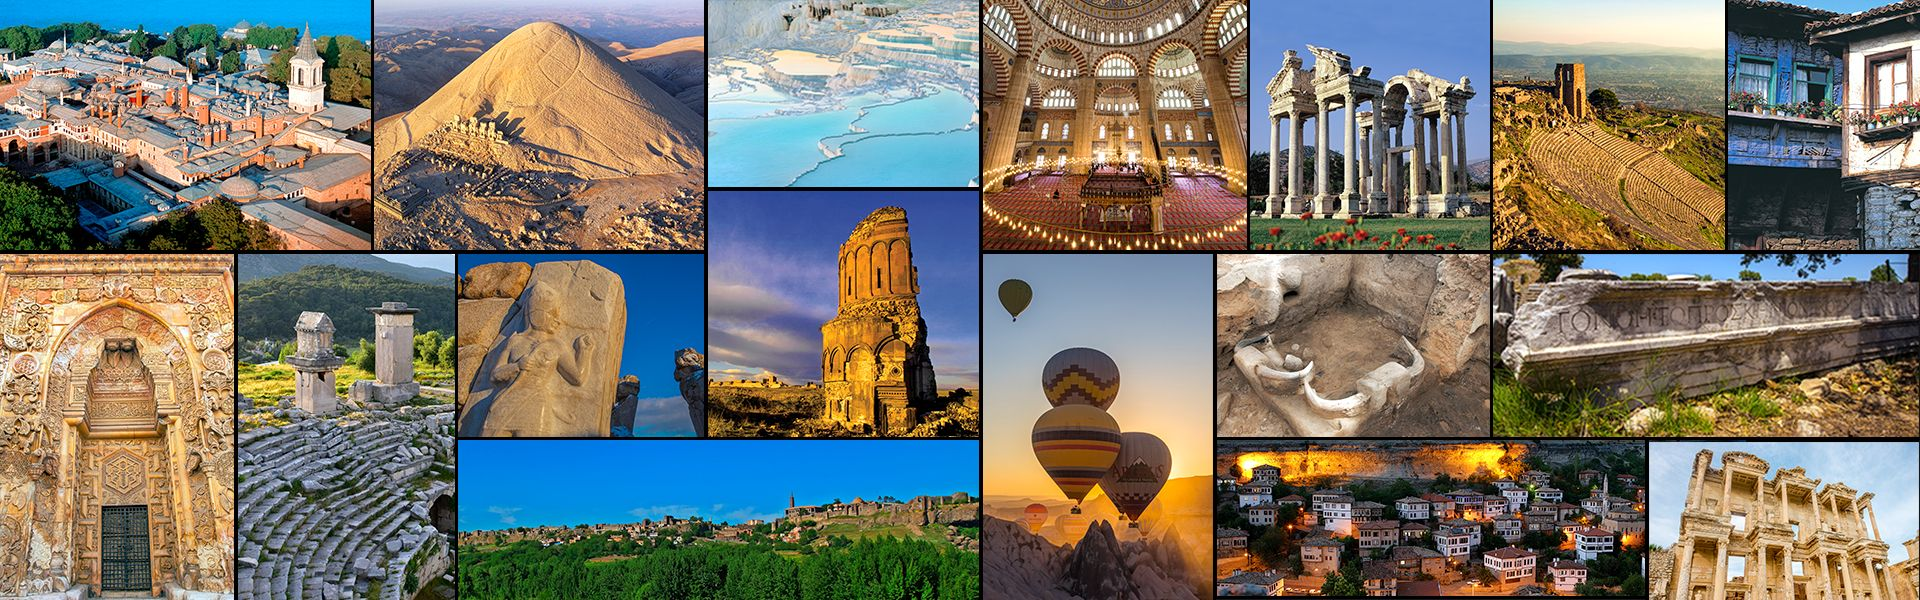 Turkey's Ancient History and Heritage